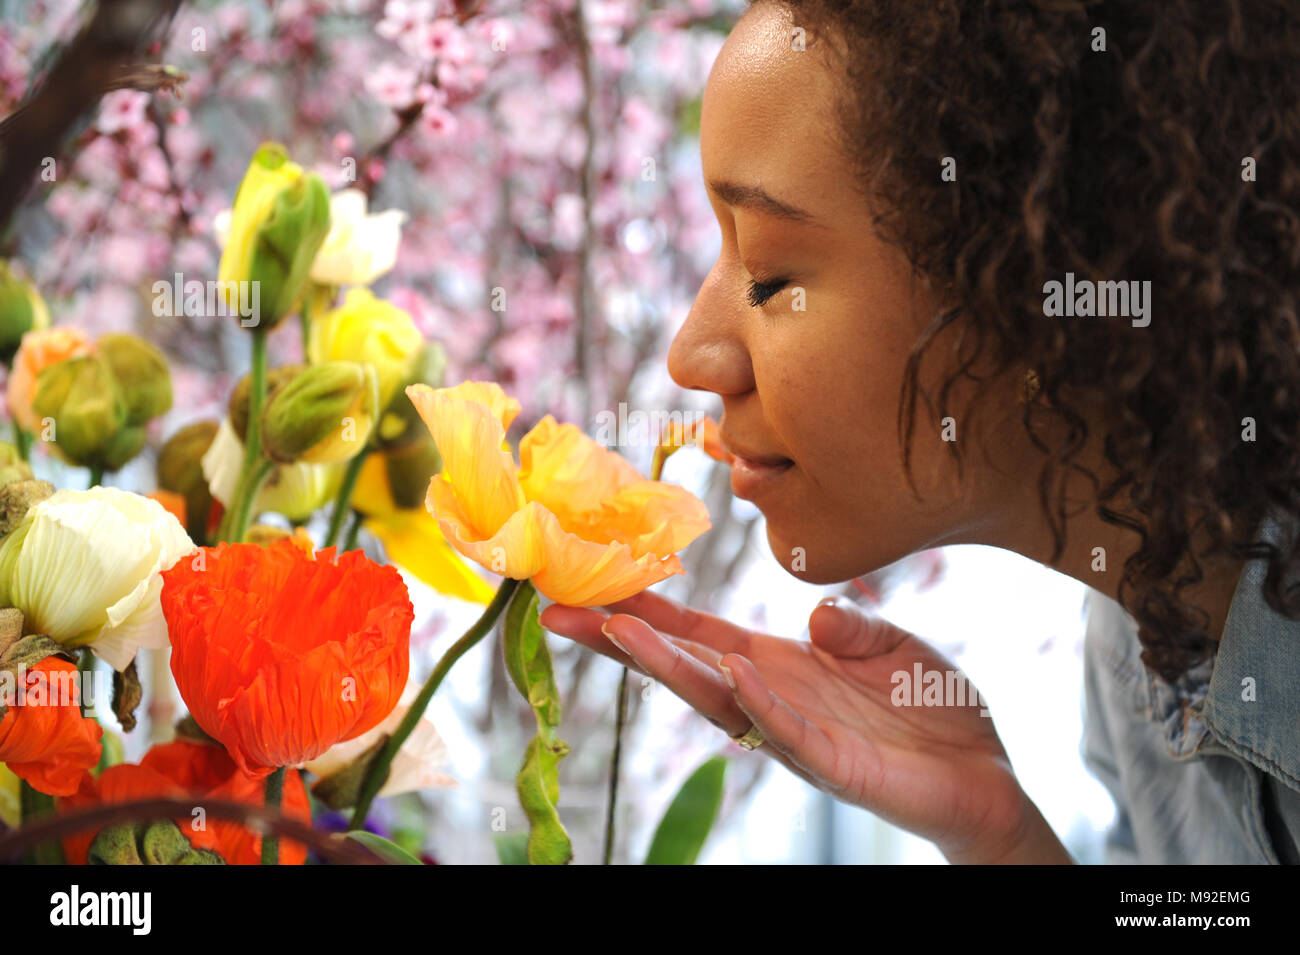 Consumerism: Woman smelling fresh flowers.  - Stock Image